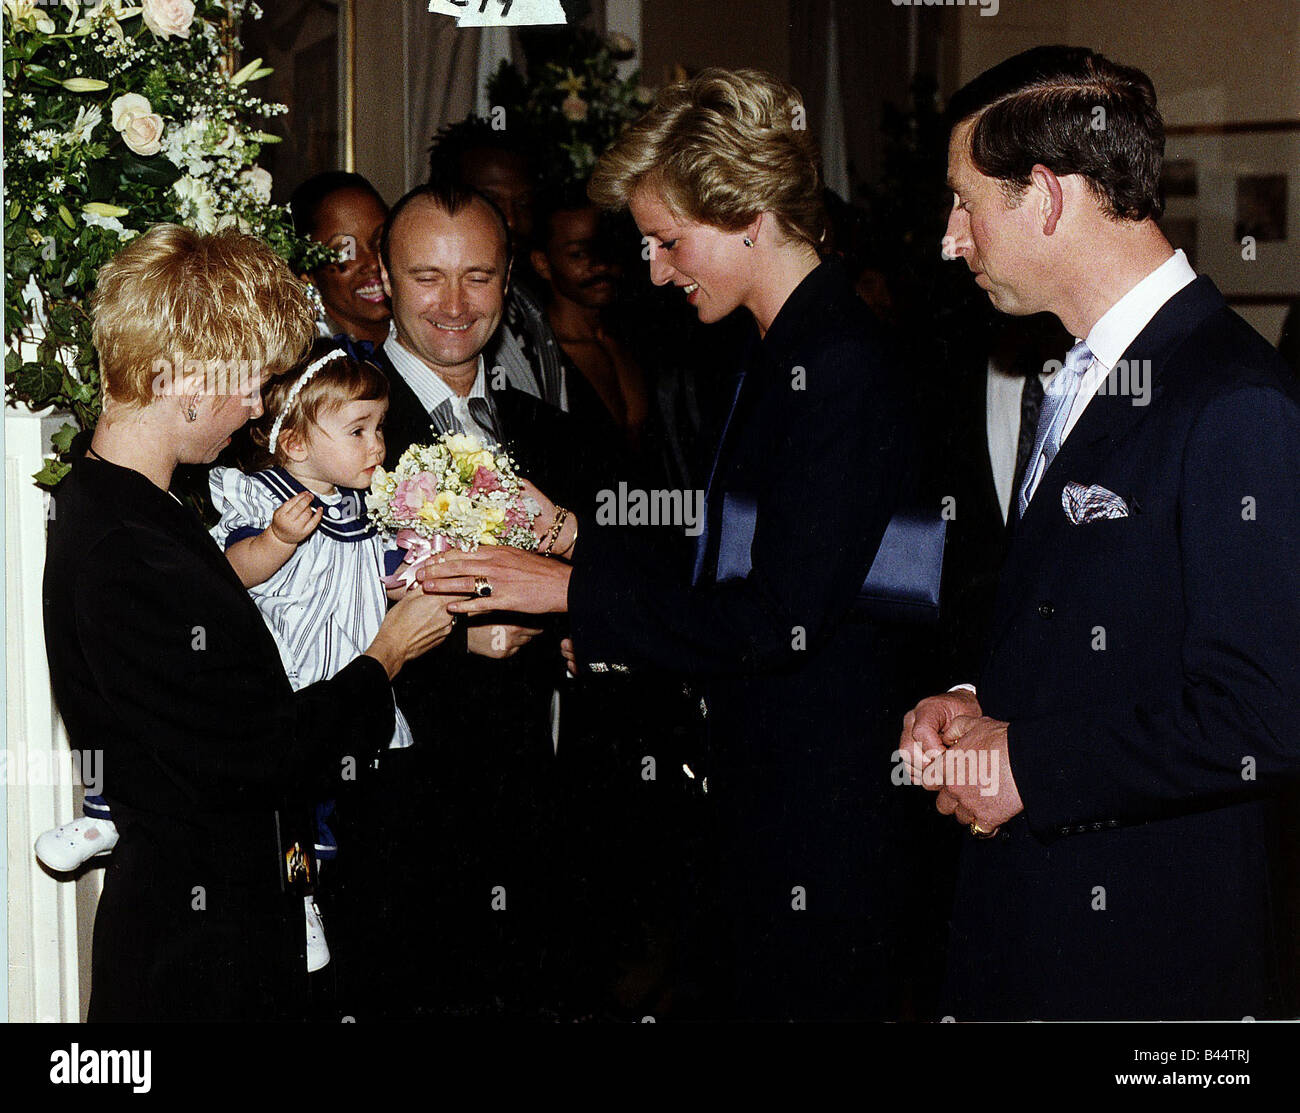 Phil Collins And His Family Meet Prince Charles Princess Diana Of Wales At The Royal Albert Hall